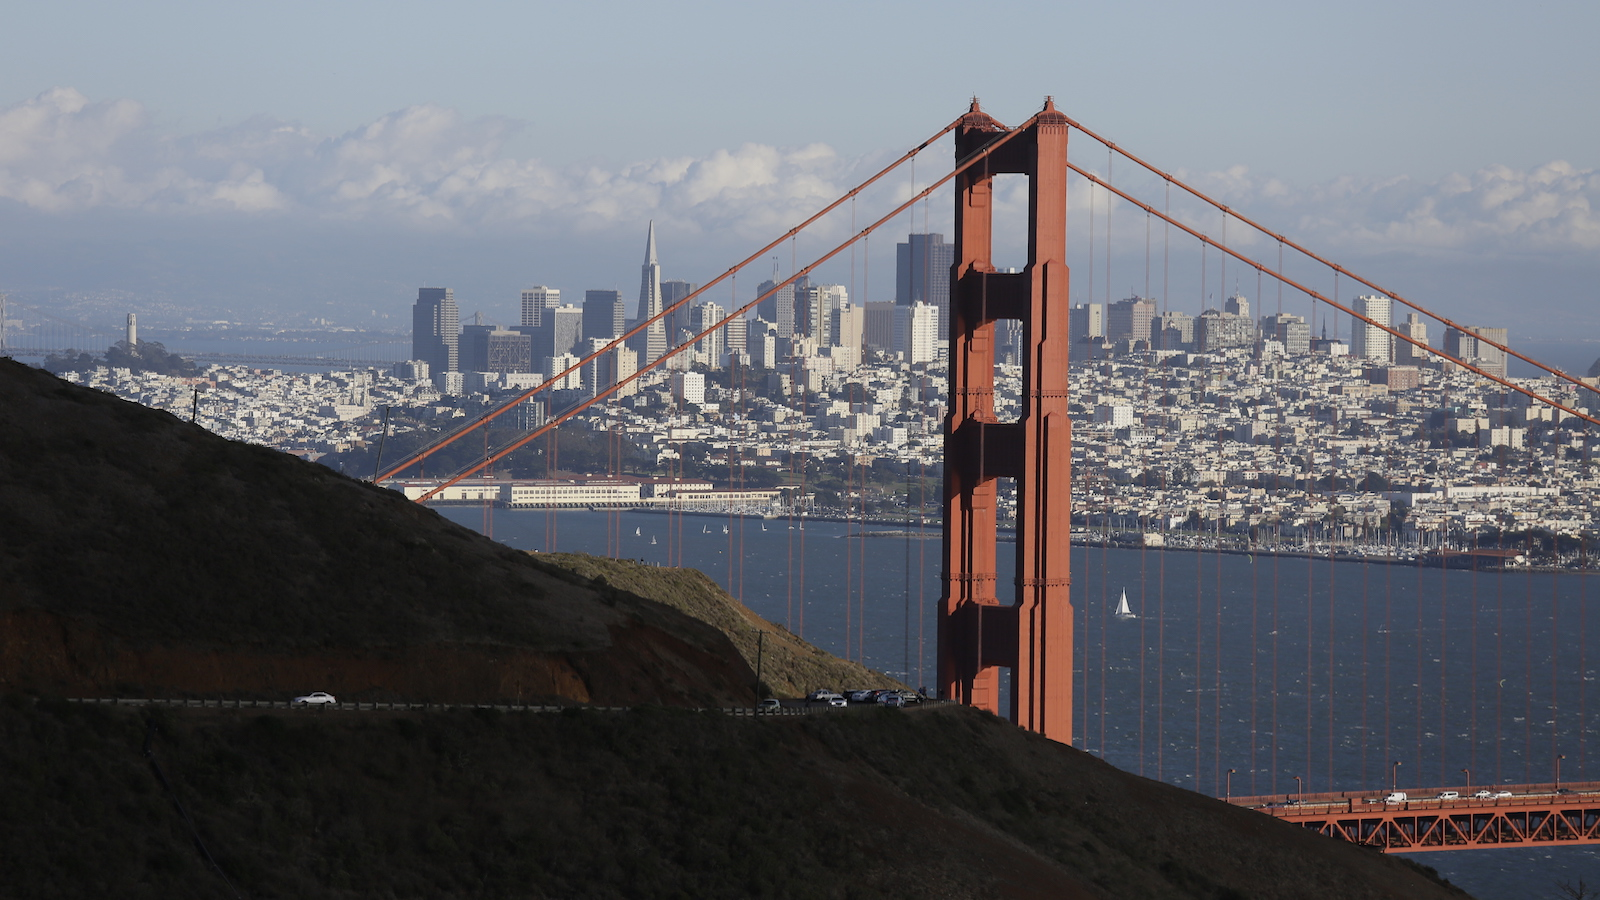 This  Oct. 28, 2015, photo shows the Golden Gate Bridge and San Francisco skyline from the Marin Headlands above Sausalito, Calif. The Golden Gate Bridge is only 1.7 miles (2.7 kilometers) long, but its appeal spans the world. You can drive, bike or walk across to the Marin Headlands.  (AP Photo/Eric Risberg)